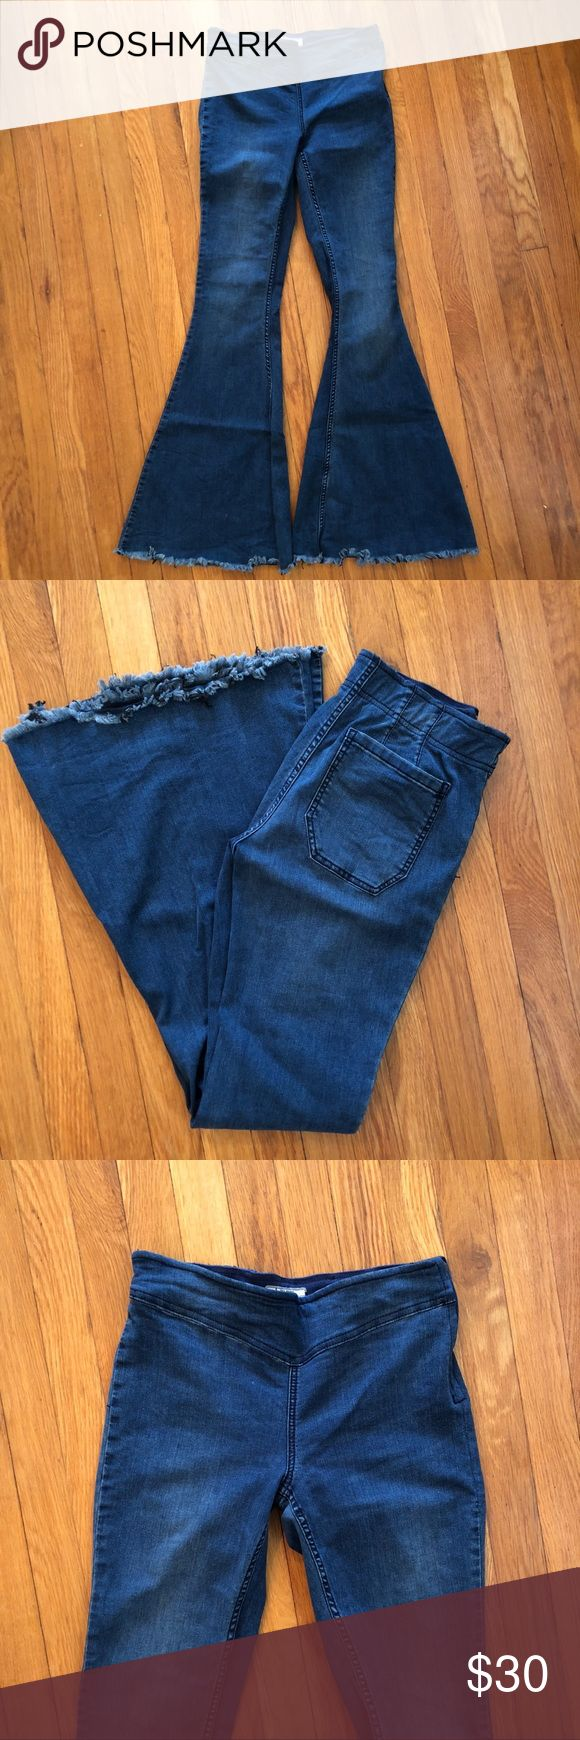 Free People Super Flare Jeans Medium wash, mid-rise super flared jeans. Side zipper and raw hem. Great condition, only worn a few times. Free People Jeans Flare & Wide Leg